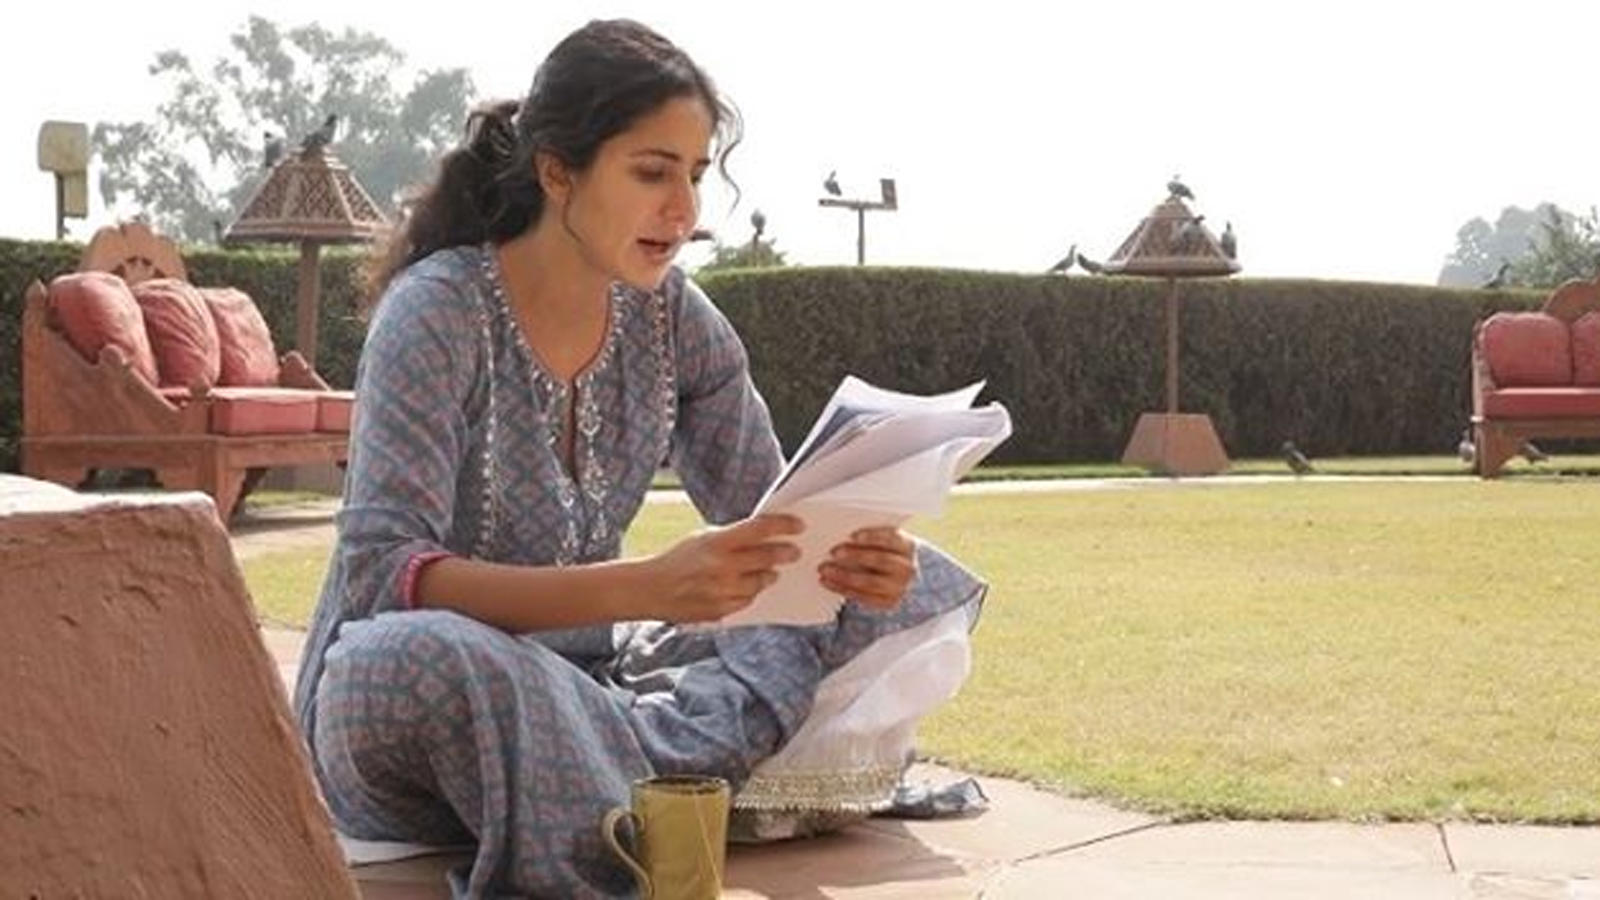 Katrina Kaif having sleepless nights before 'Bharat' release